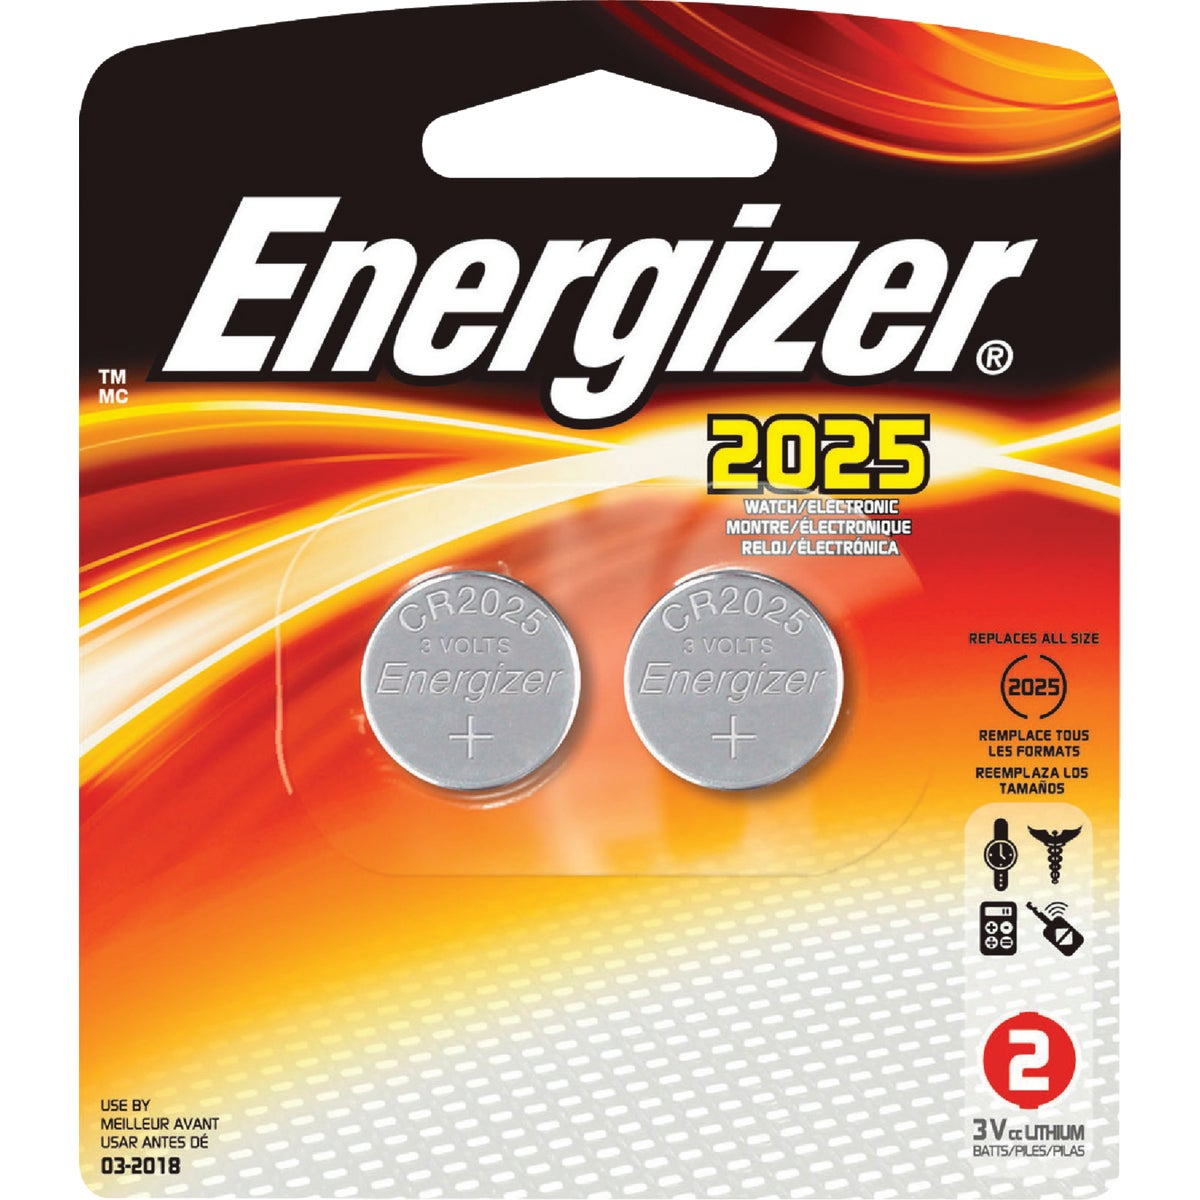 LITHIUM WATCH BATTERY - 2025BP-2 by Energizer